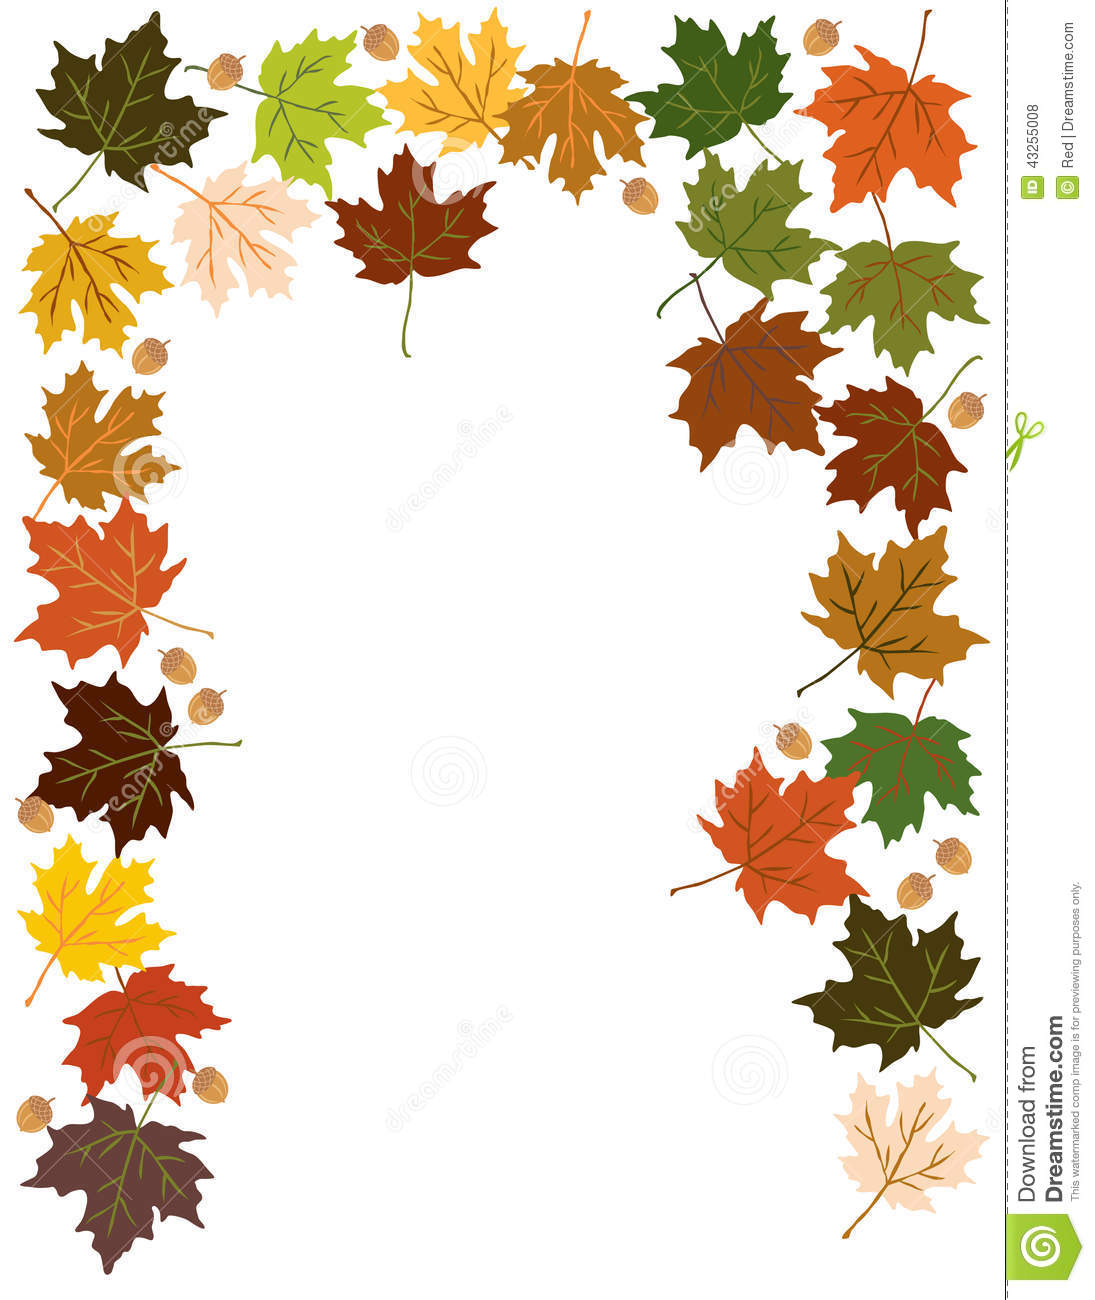 Image Gallery of Simple Fall Leaf Border